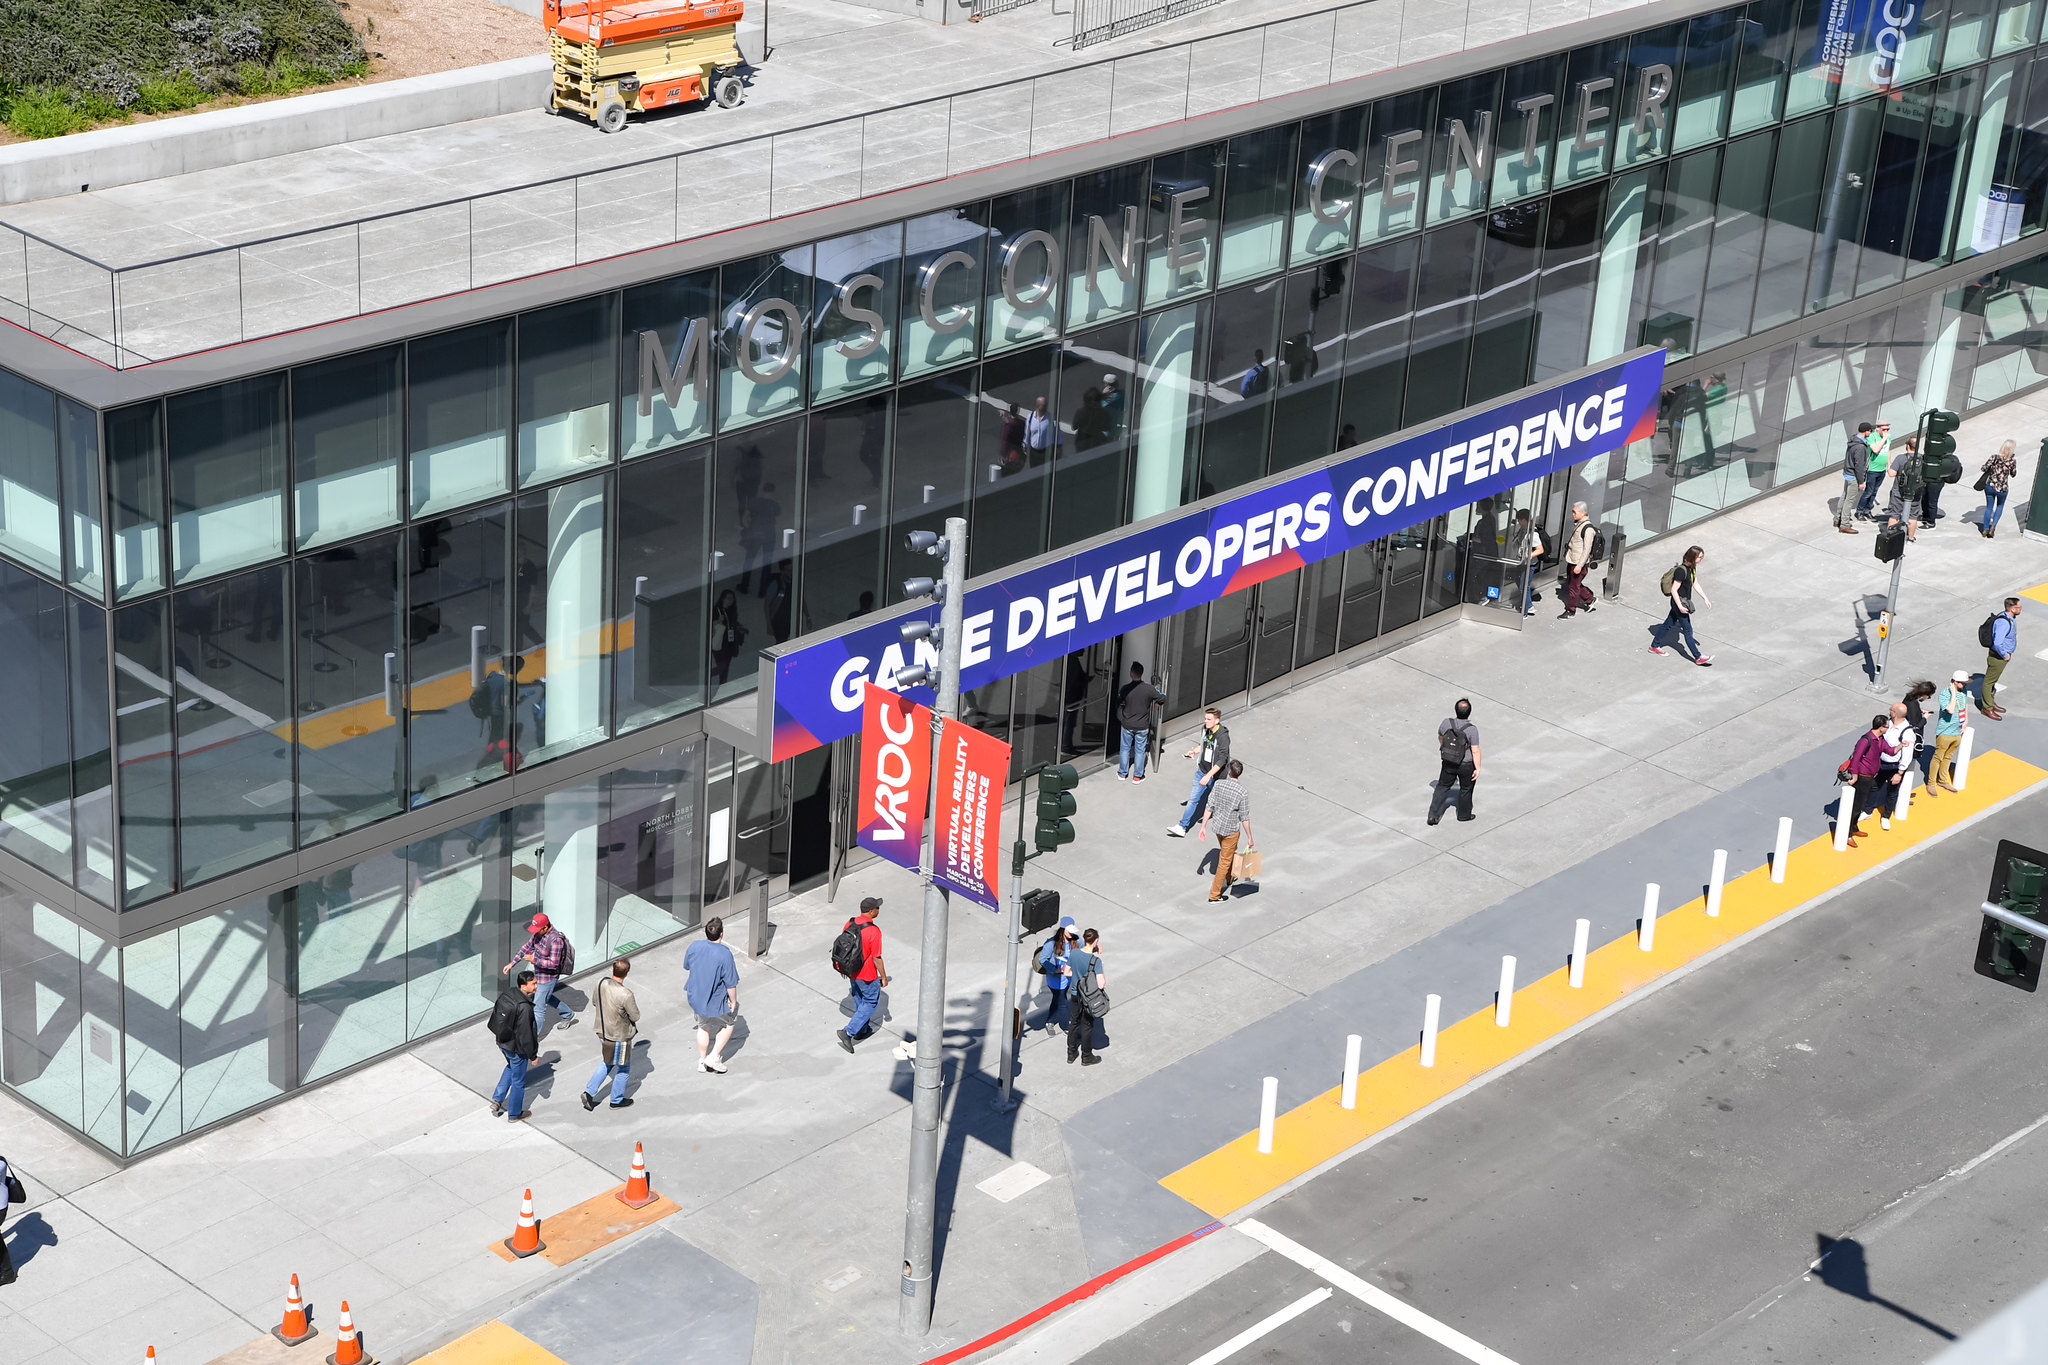 More companies cancel GDC showings, but GDC organizers refuse to admit defeat